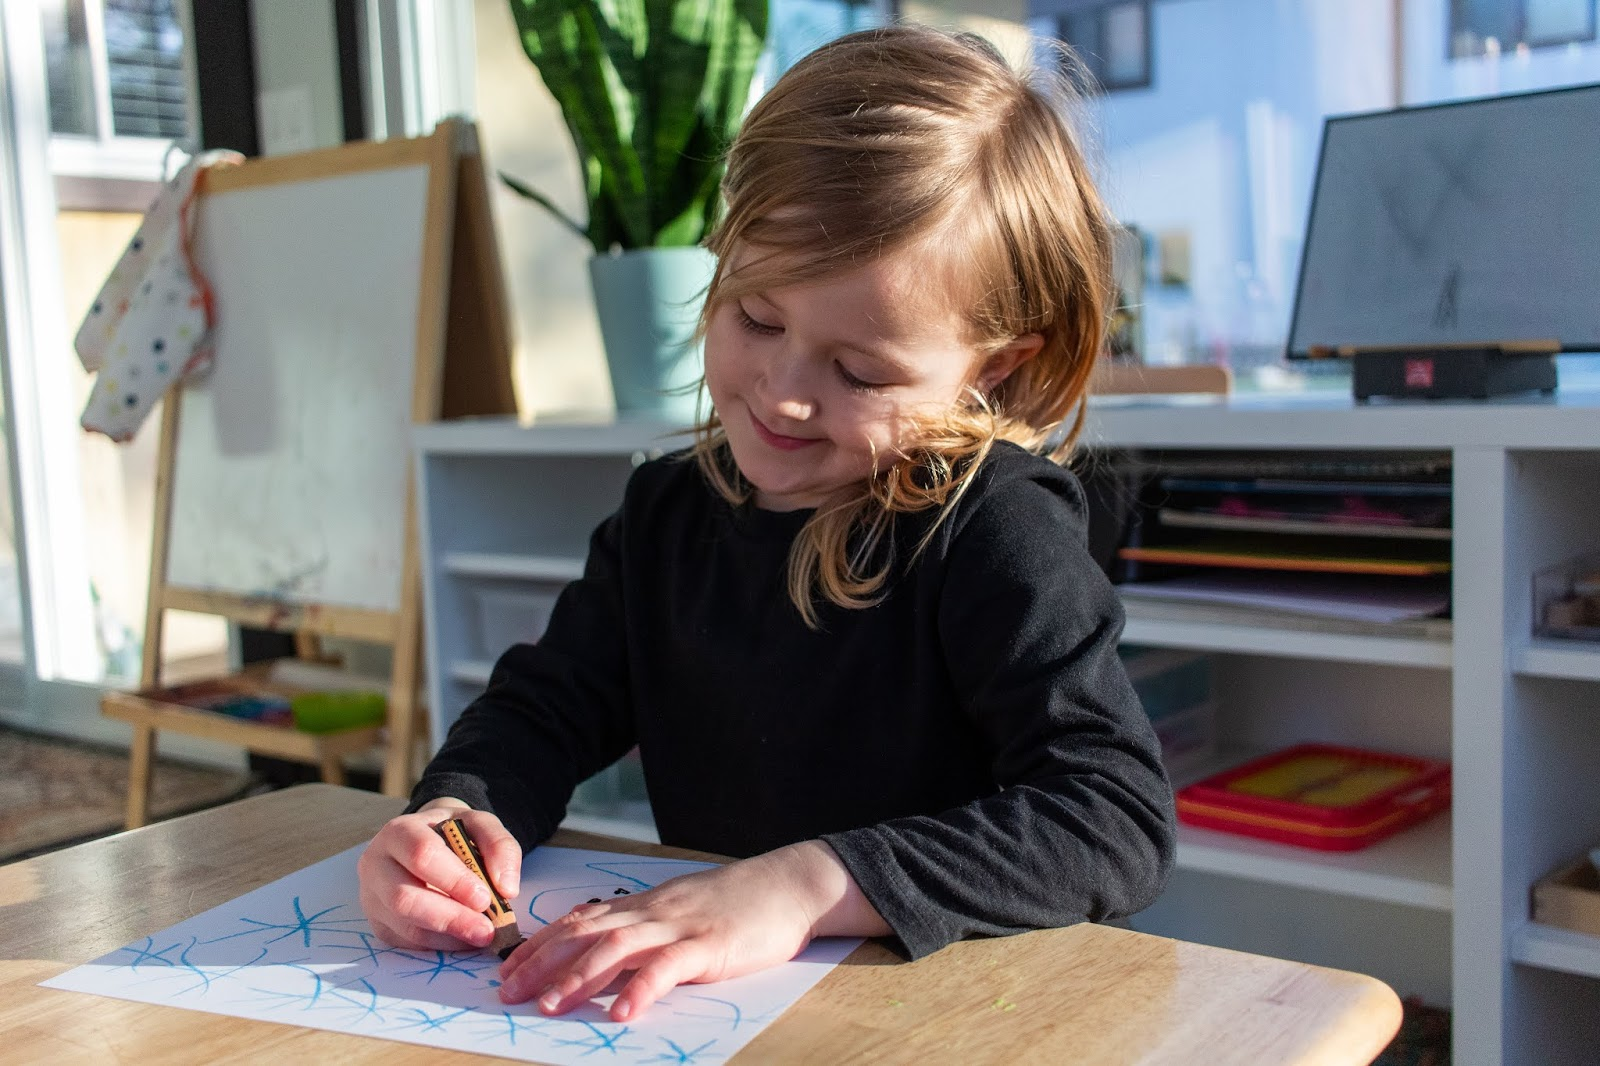 Signs to look for as your Montessori child transitions to the second plane of development